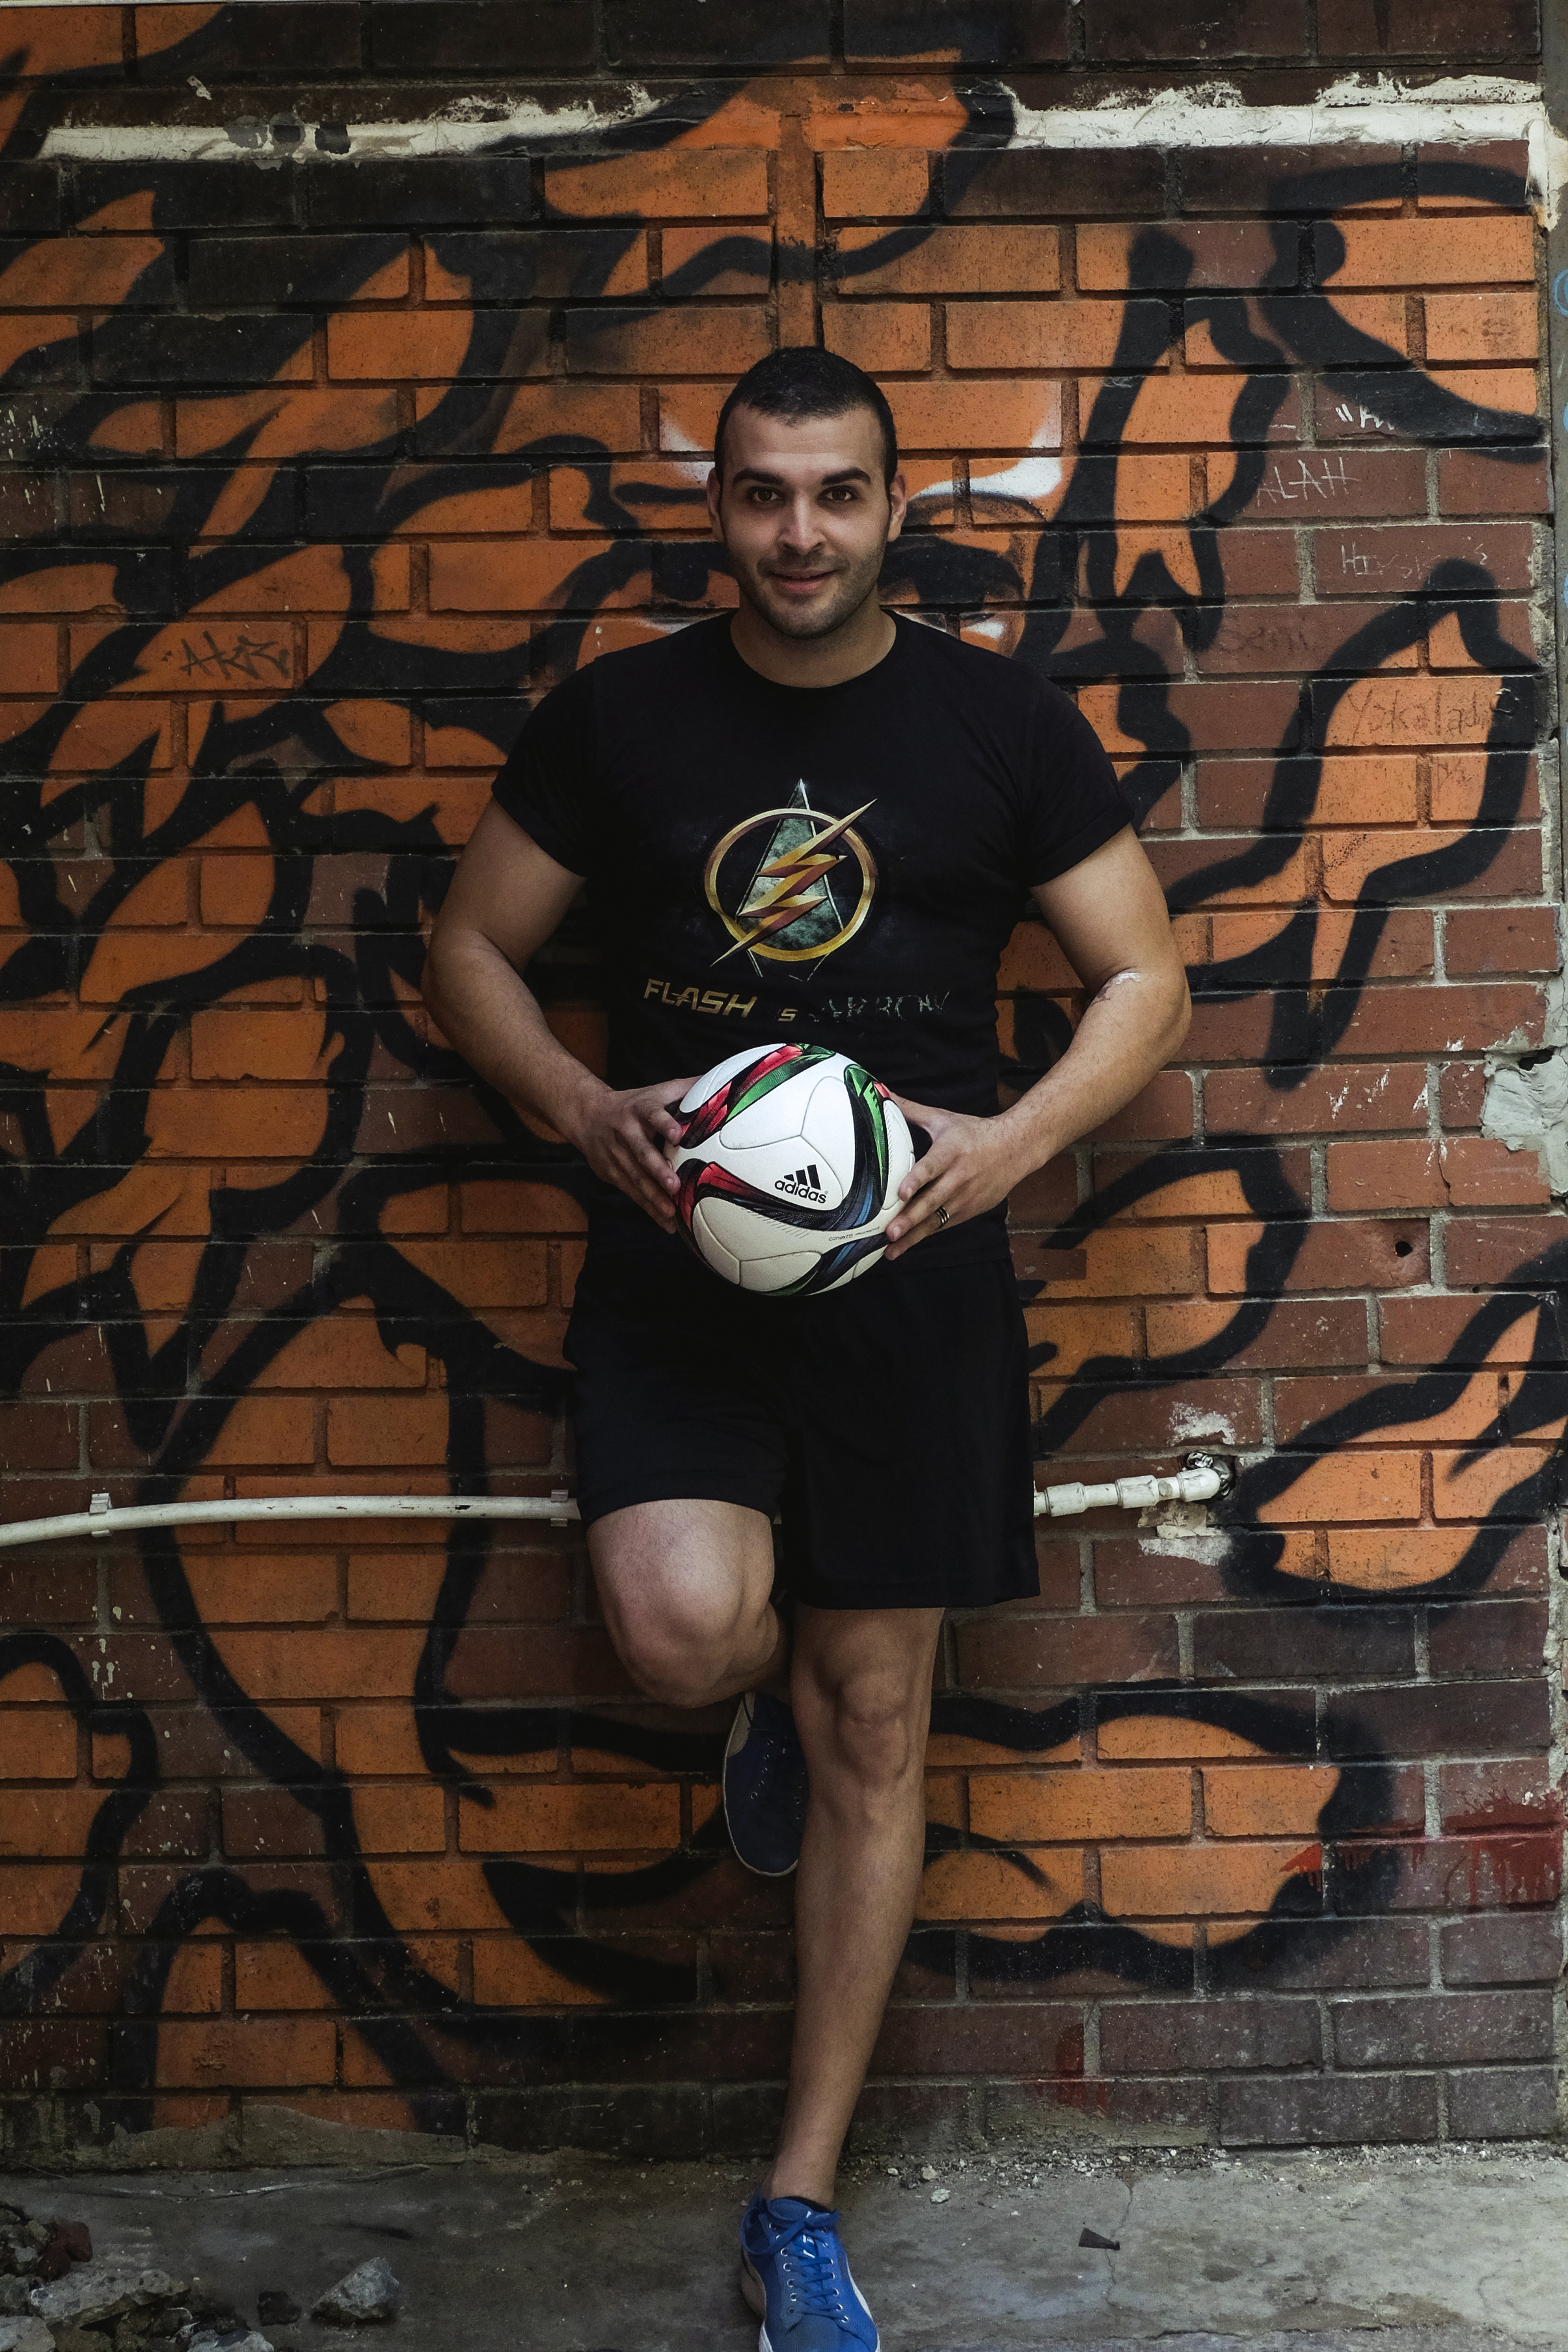 Freestyle footballers' from and around Istanbul met in Istanbul prior to the 2016 Turkish Championship to be held in Izmir on 11th December 2016. We have shot promotional videos and photography in back streets of Istanbul's Karaköy and Tünel districts. The person on this picture is the Turkish Champion in freestyle football Erkan Yetim.